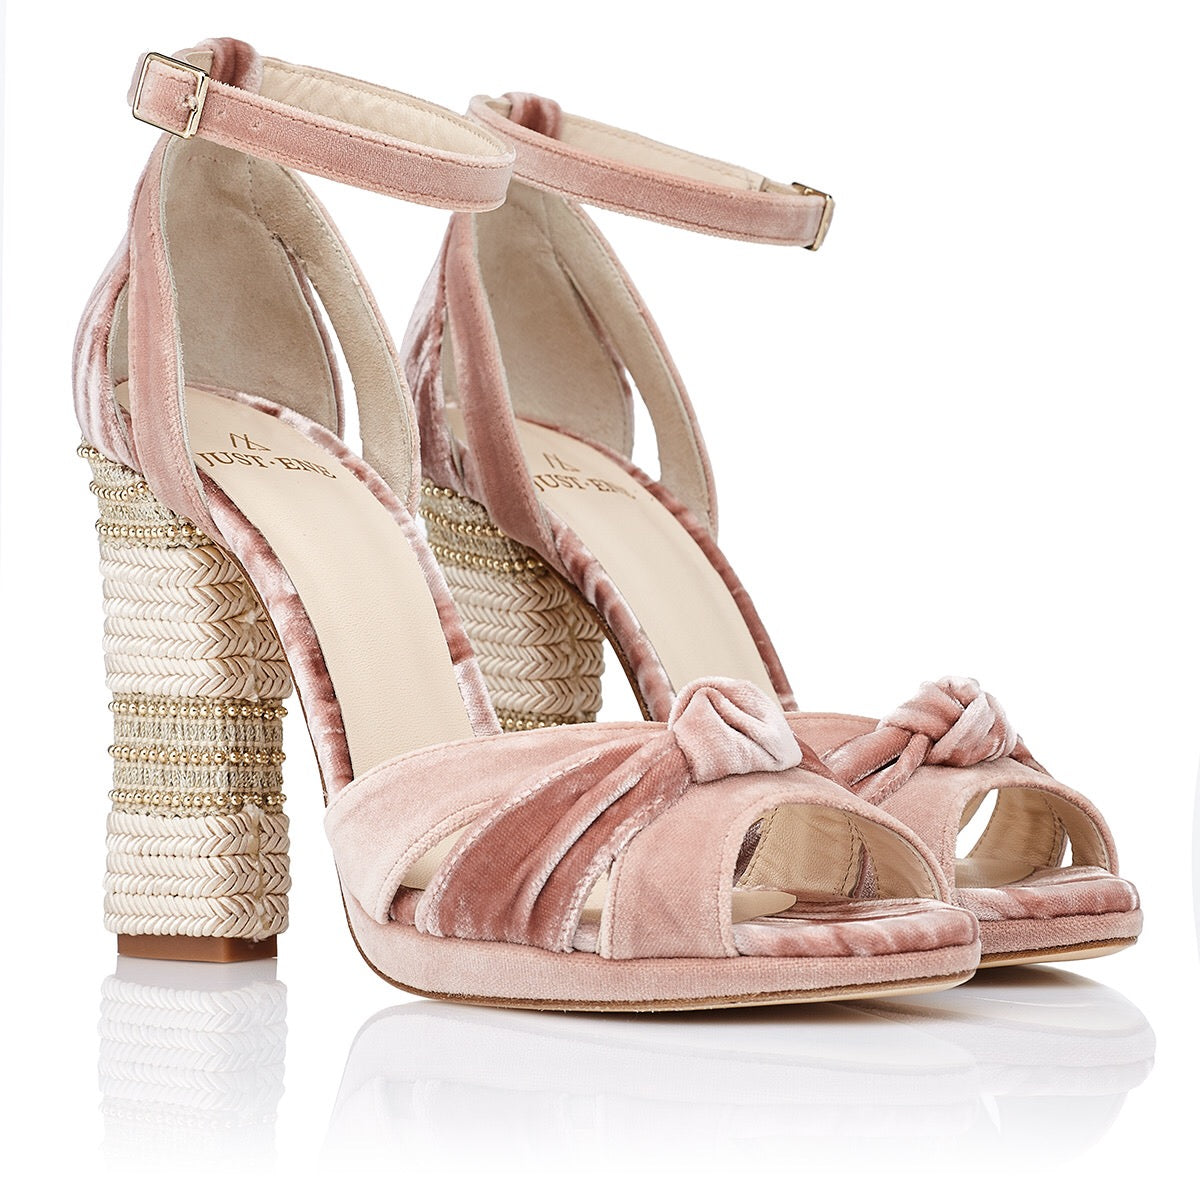 ZAHARA ( 10 CM WITH PLATFORM ) - Just-ENE